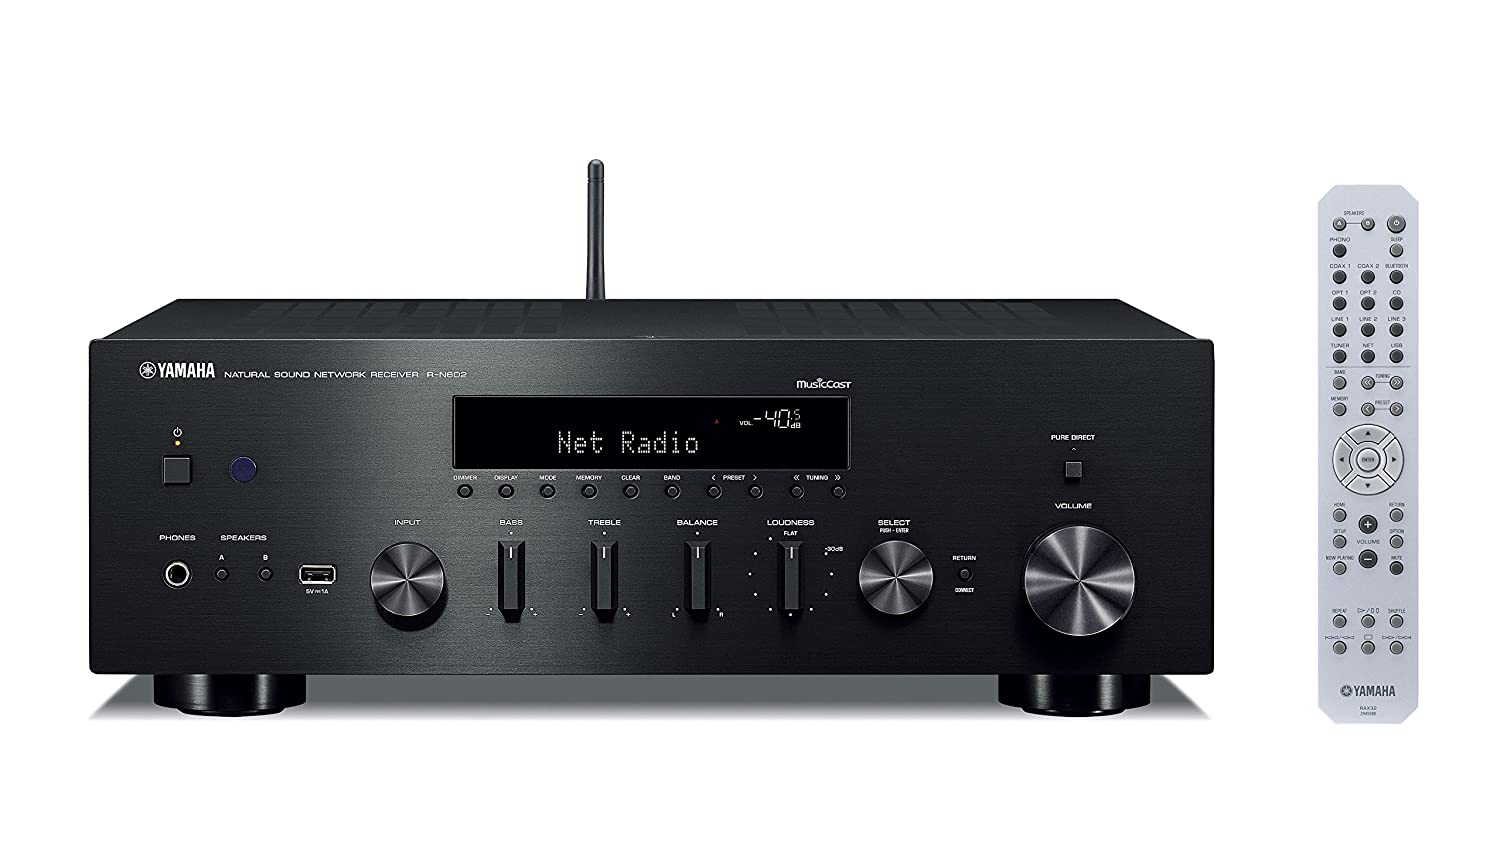 Amazon.com: Yamaha R-N602 AV Receiver (Black), Works with Alexa ...